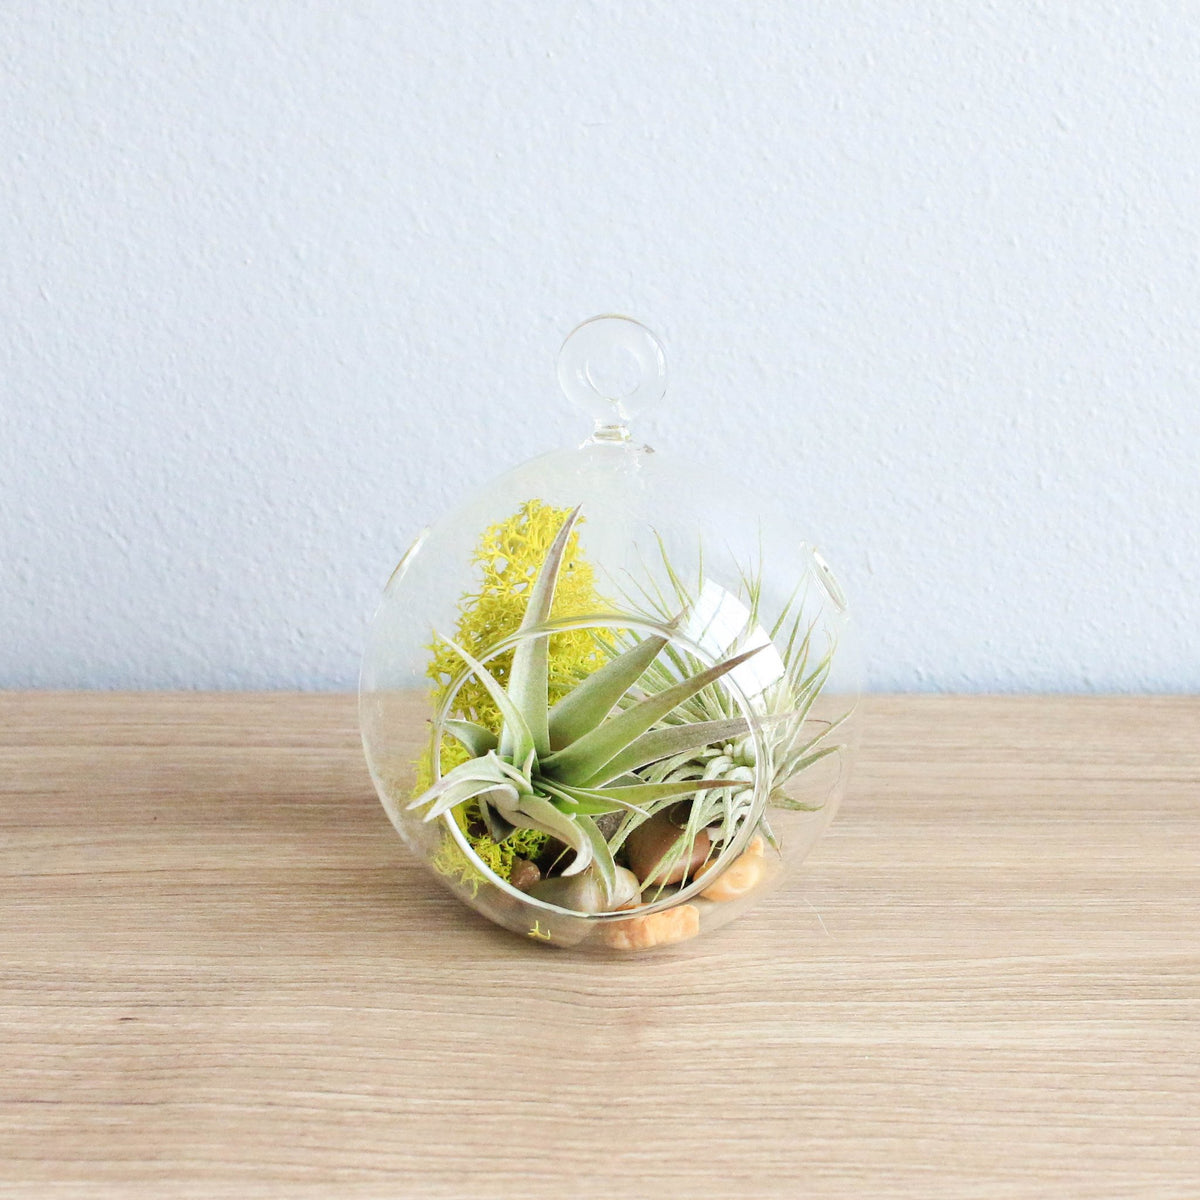 Set of 2 Stunning Hanging Glass Terrariums Hanging Plant Terrariums